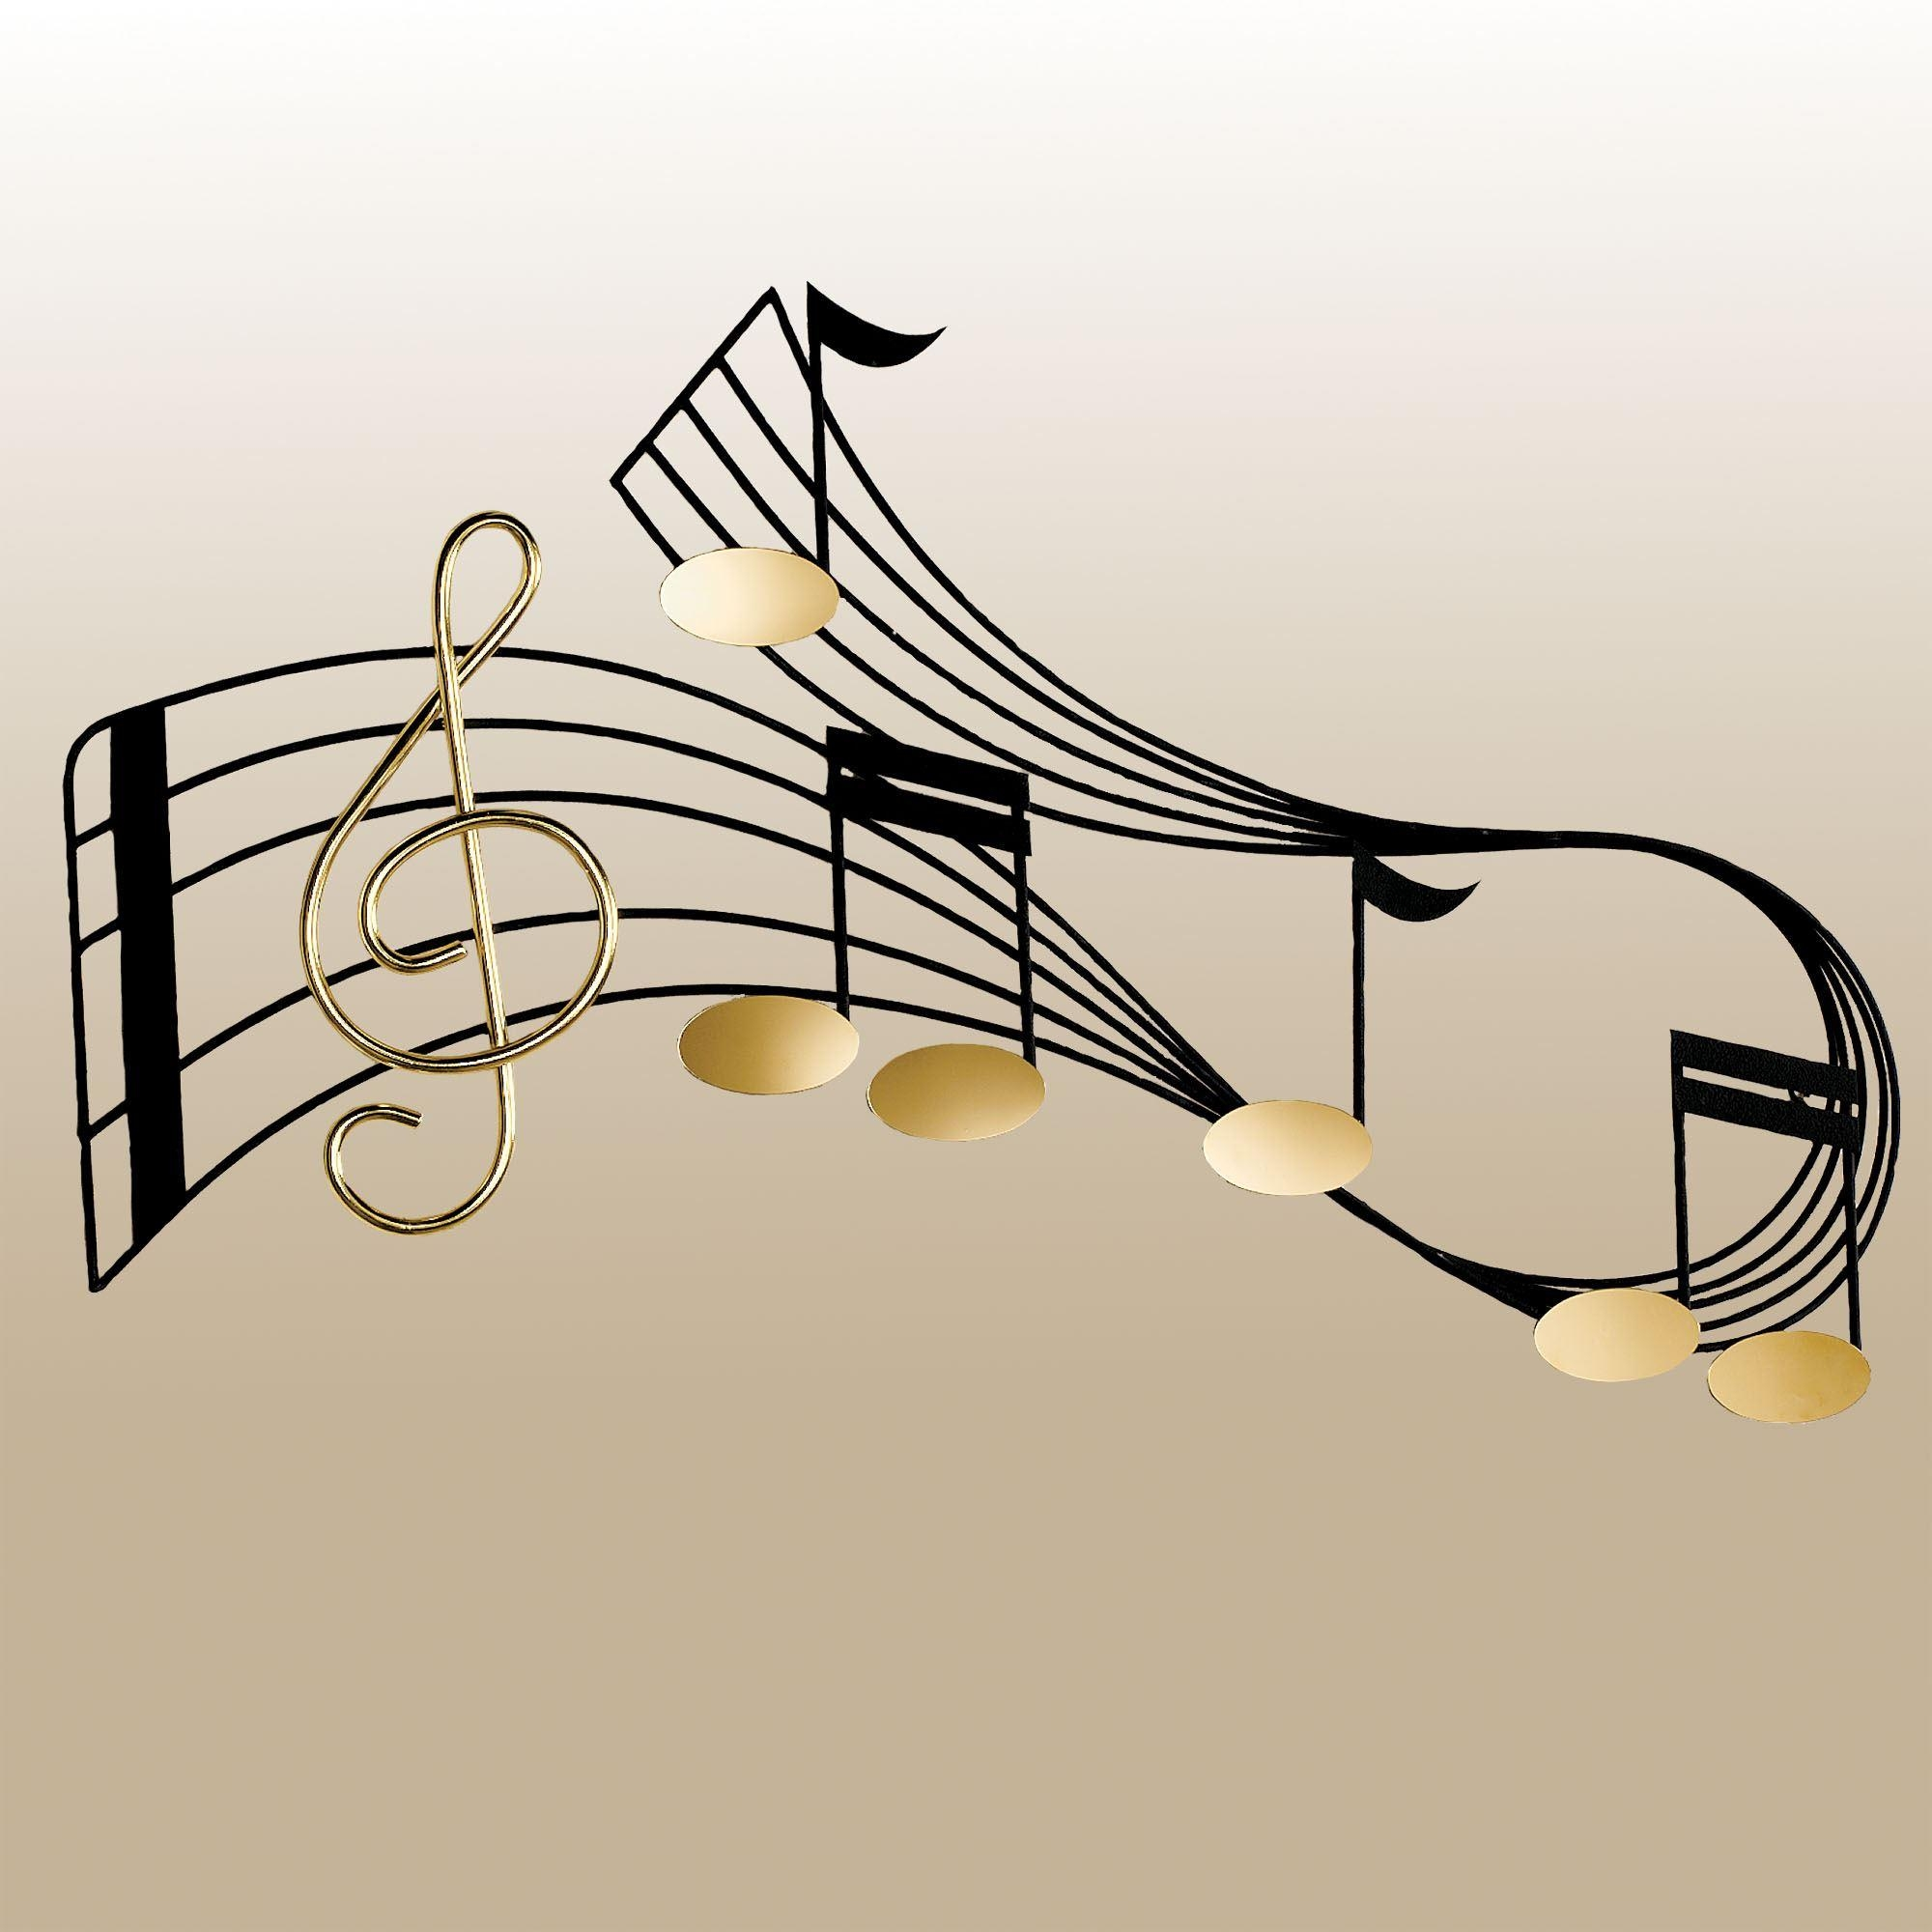 Rhythm Metal Wall Sculpture For Music Metal Wall Art (View 8 of 20)